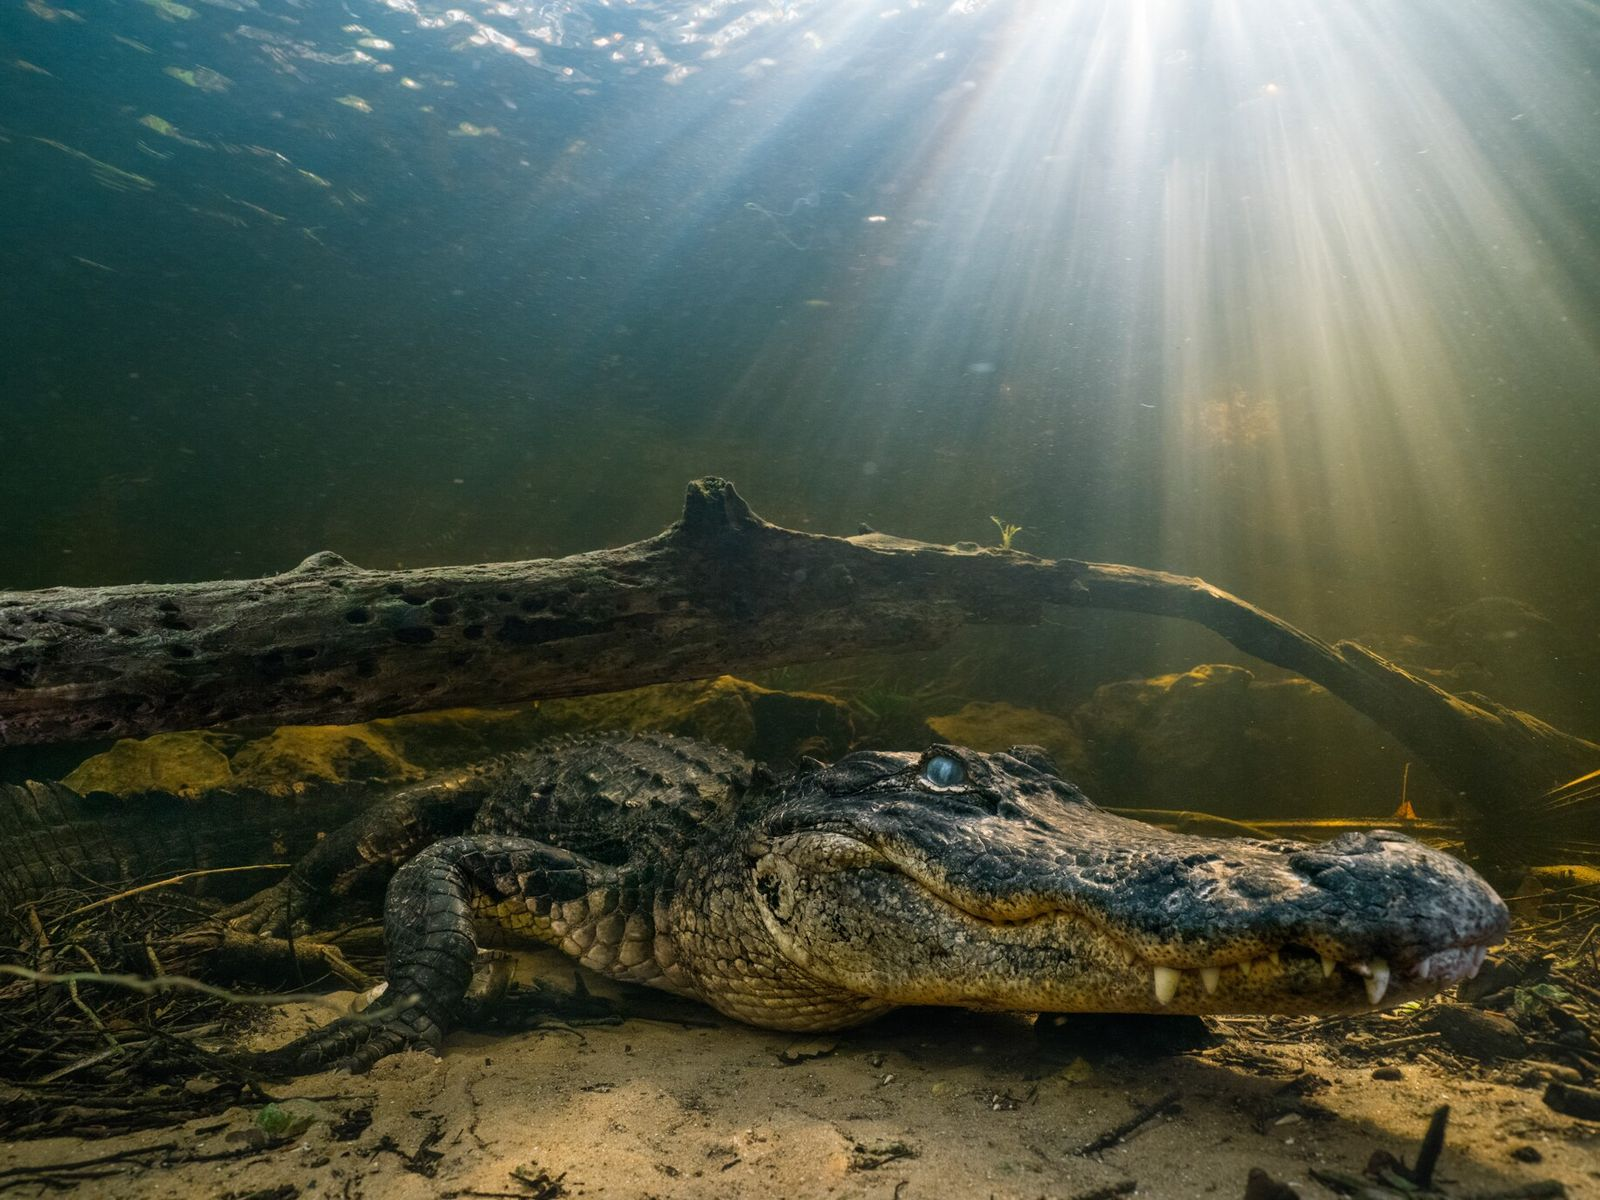 American alligators are vulnerable as youngsters, prey to birds, raccoons, and other gators. A study found ...